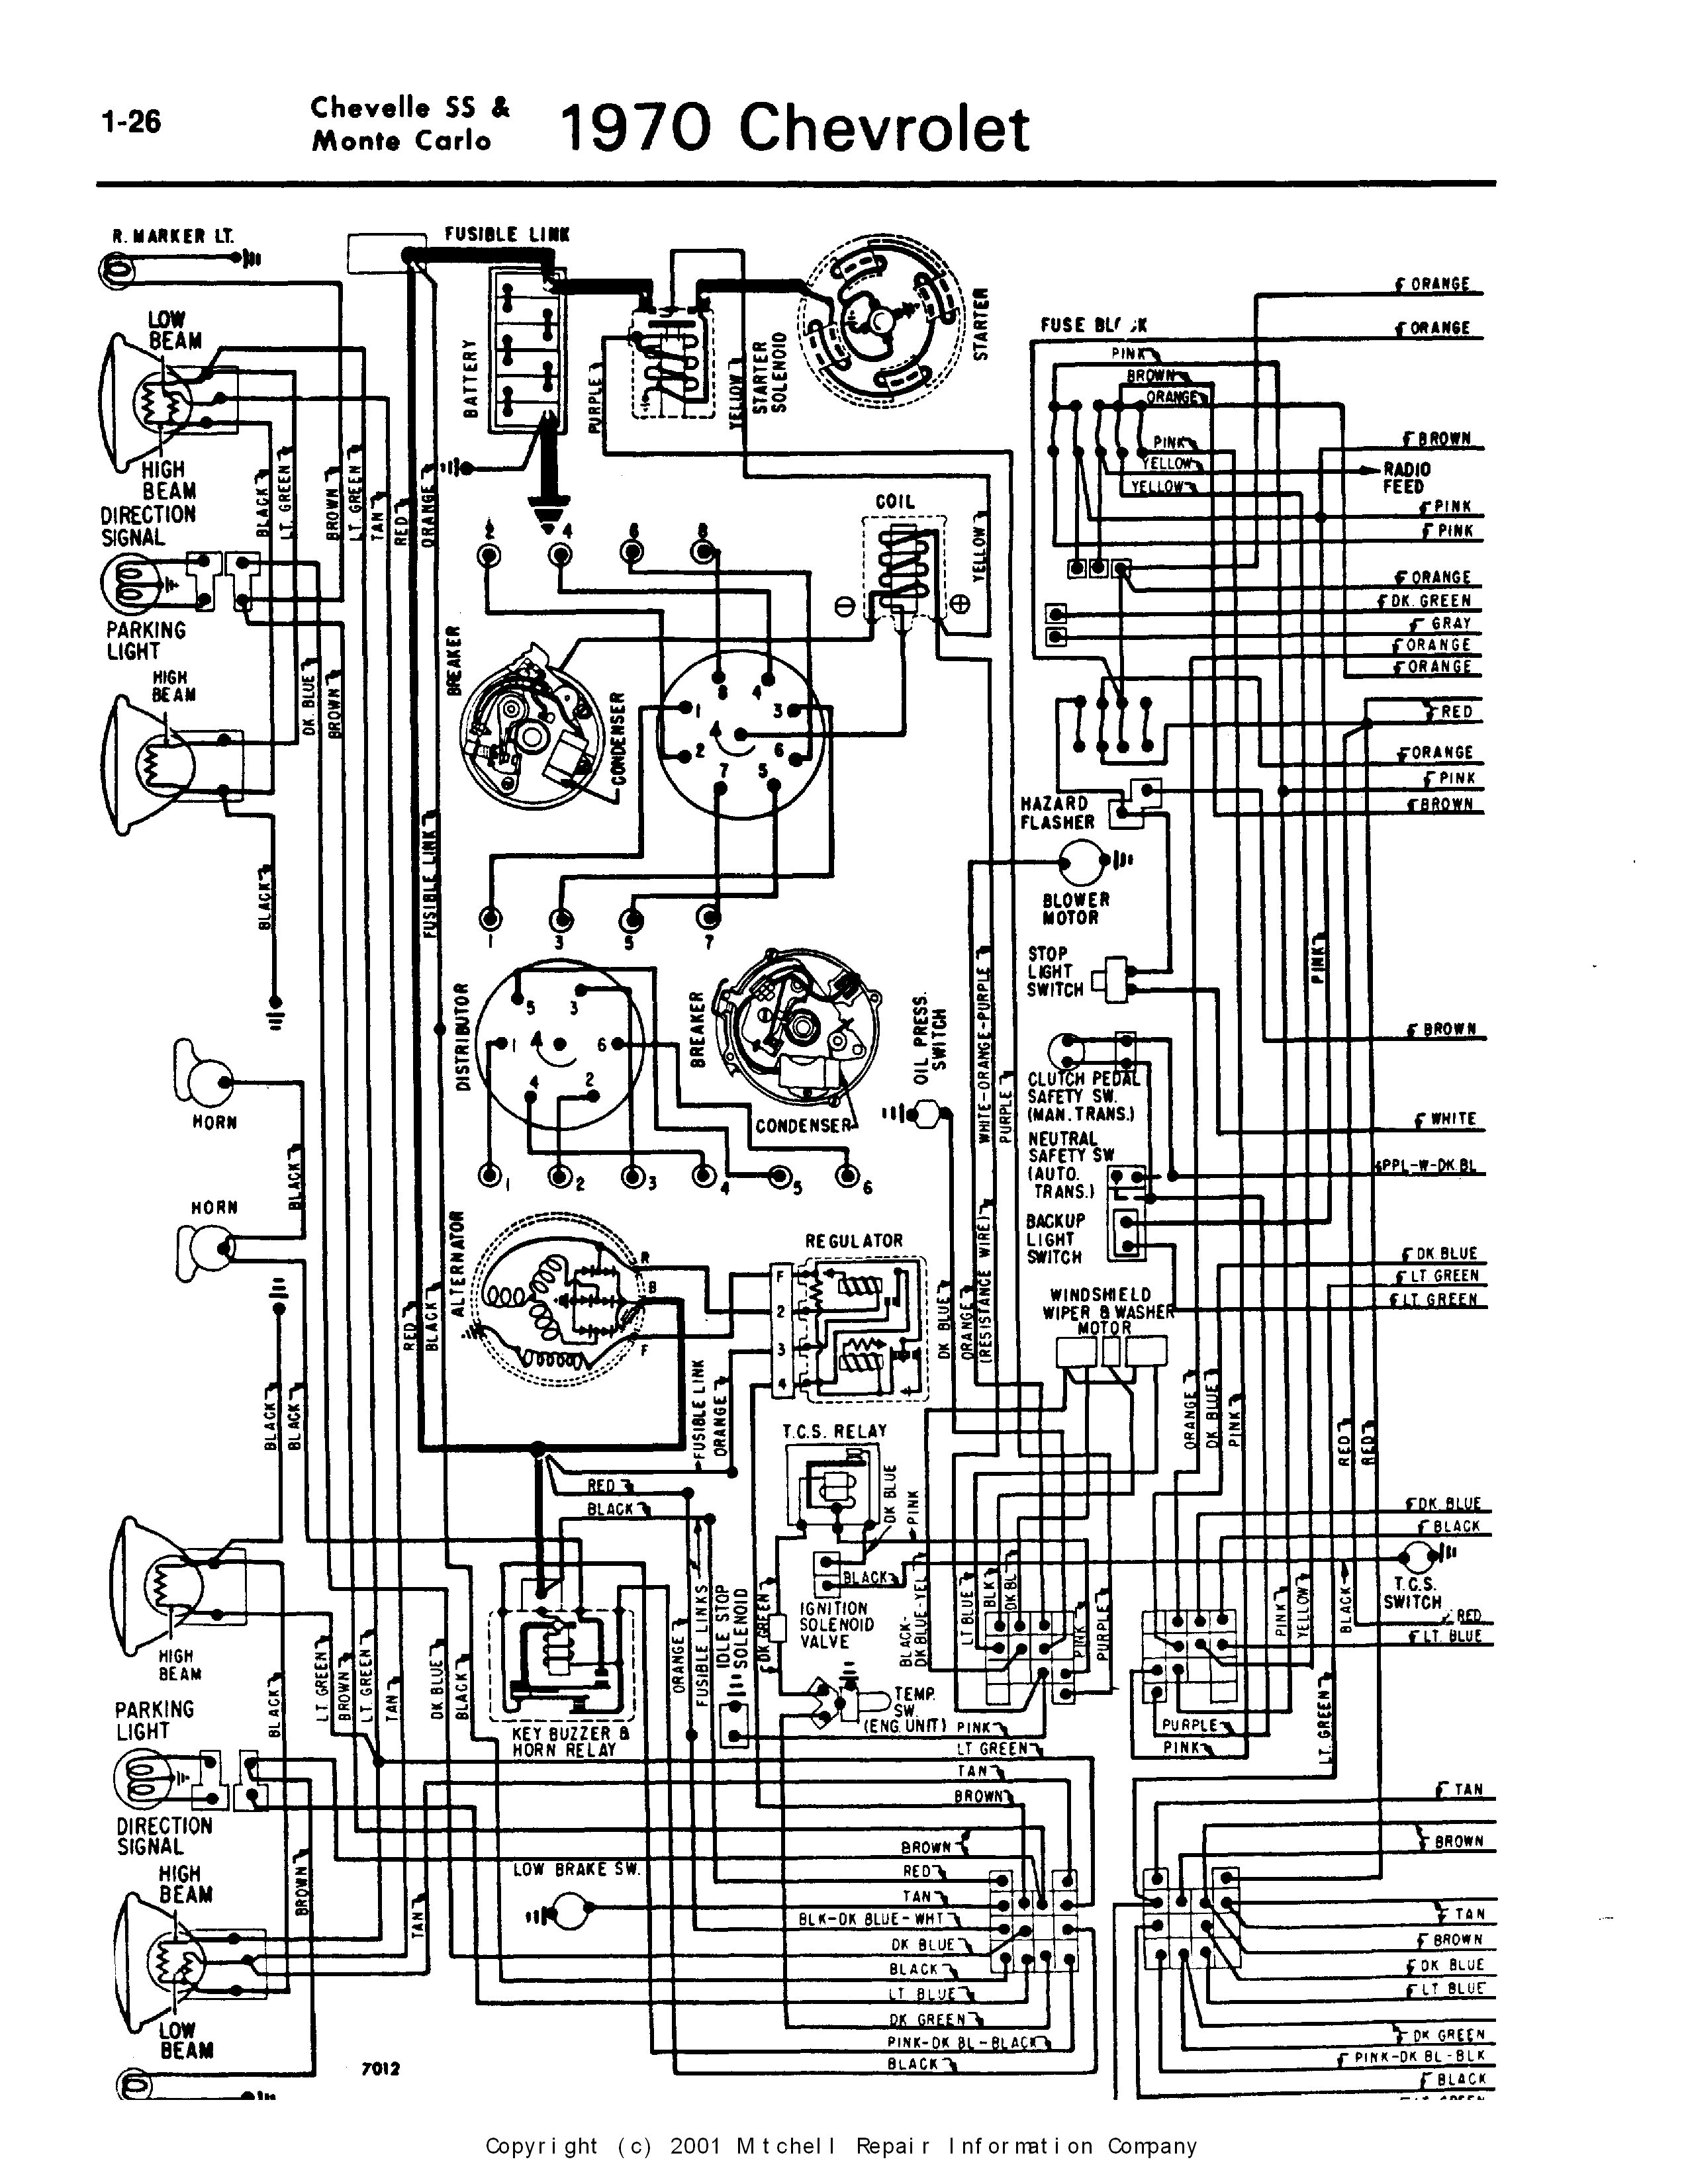 besides 1966 chevy 327 engine on ignition wiring diagram 1969 nova  1967 chevelle ignition wiring diagram #7